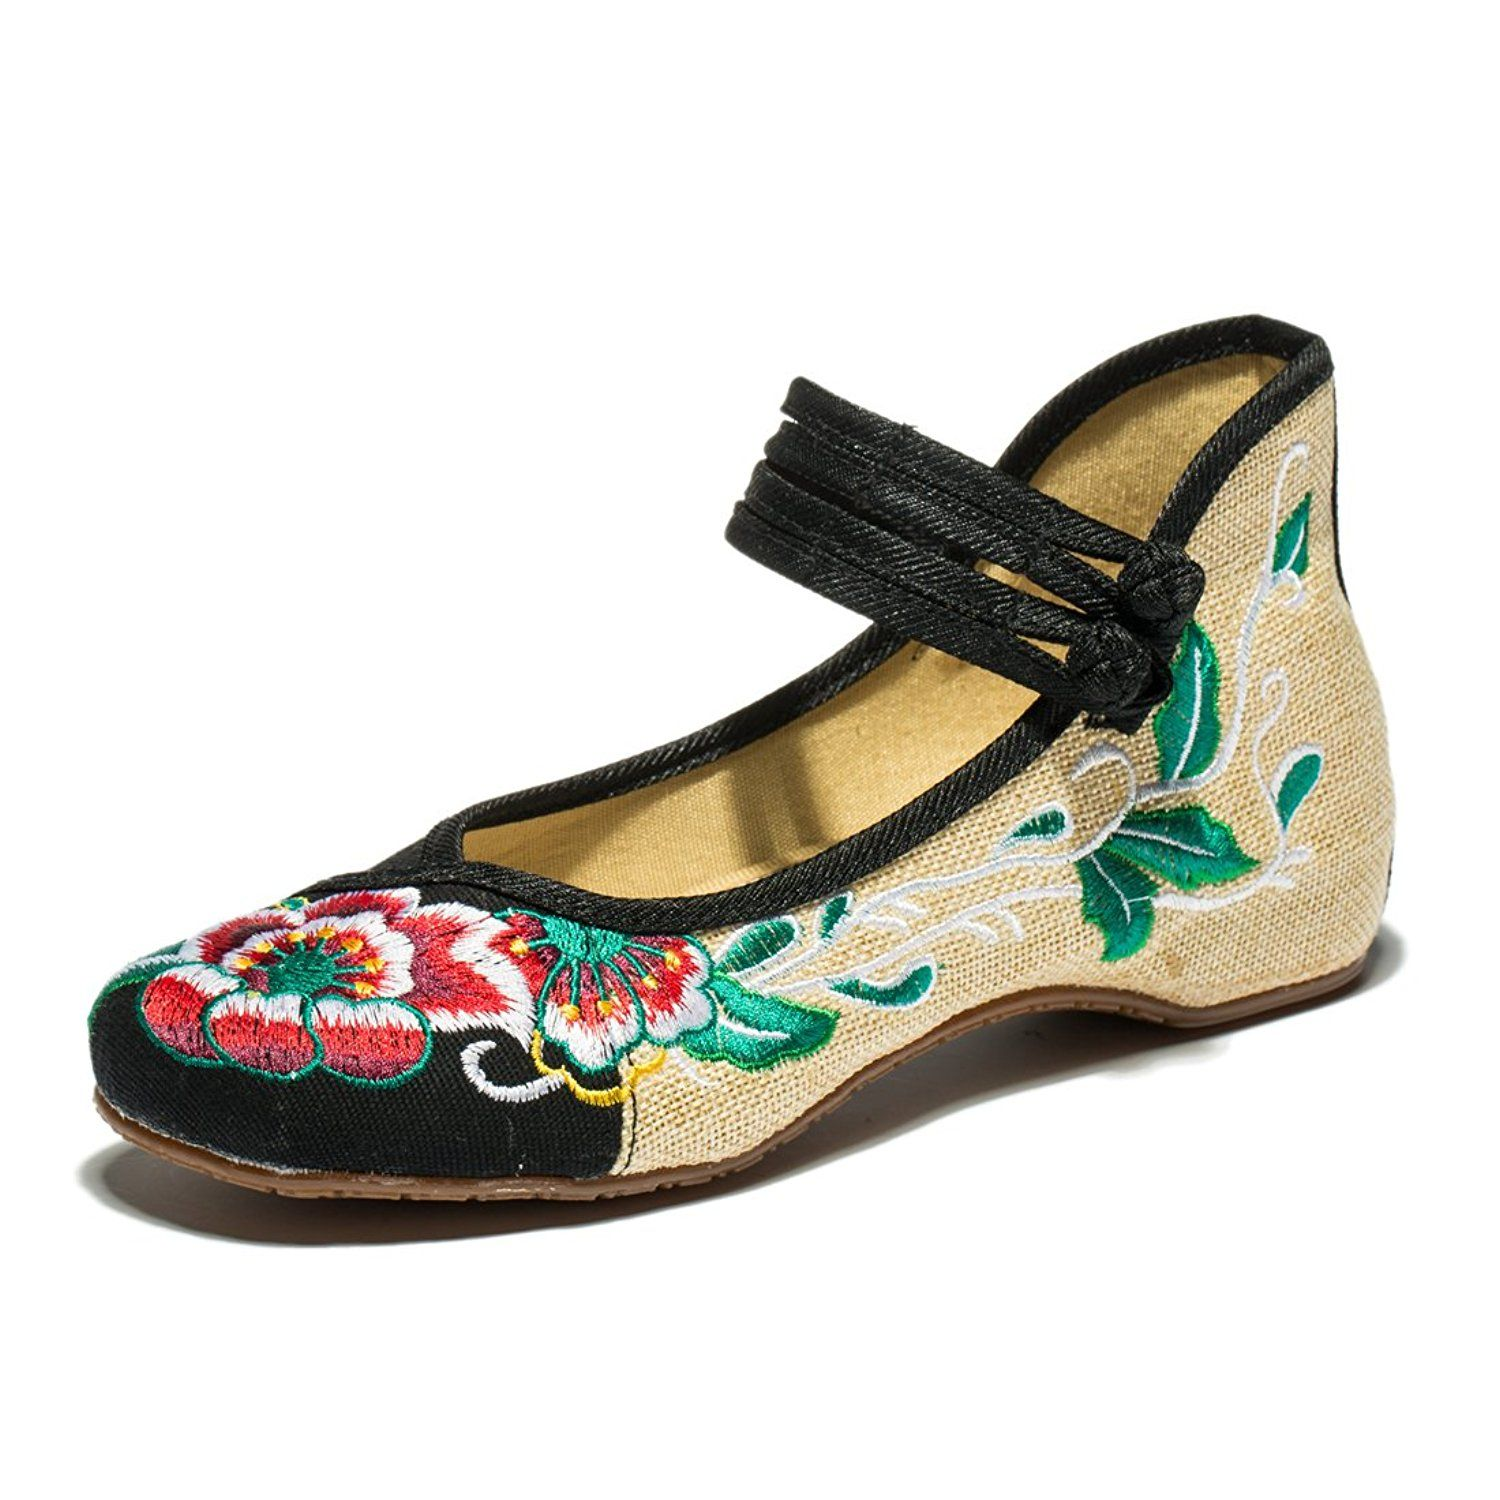 Womens Flats Chinese-style Handmade Folk Embroidery Shoes Floral Dance Shoes